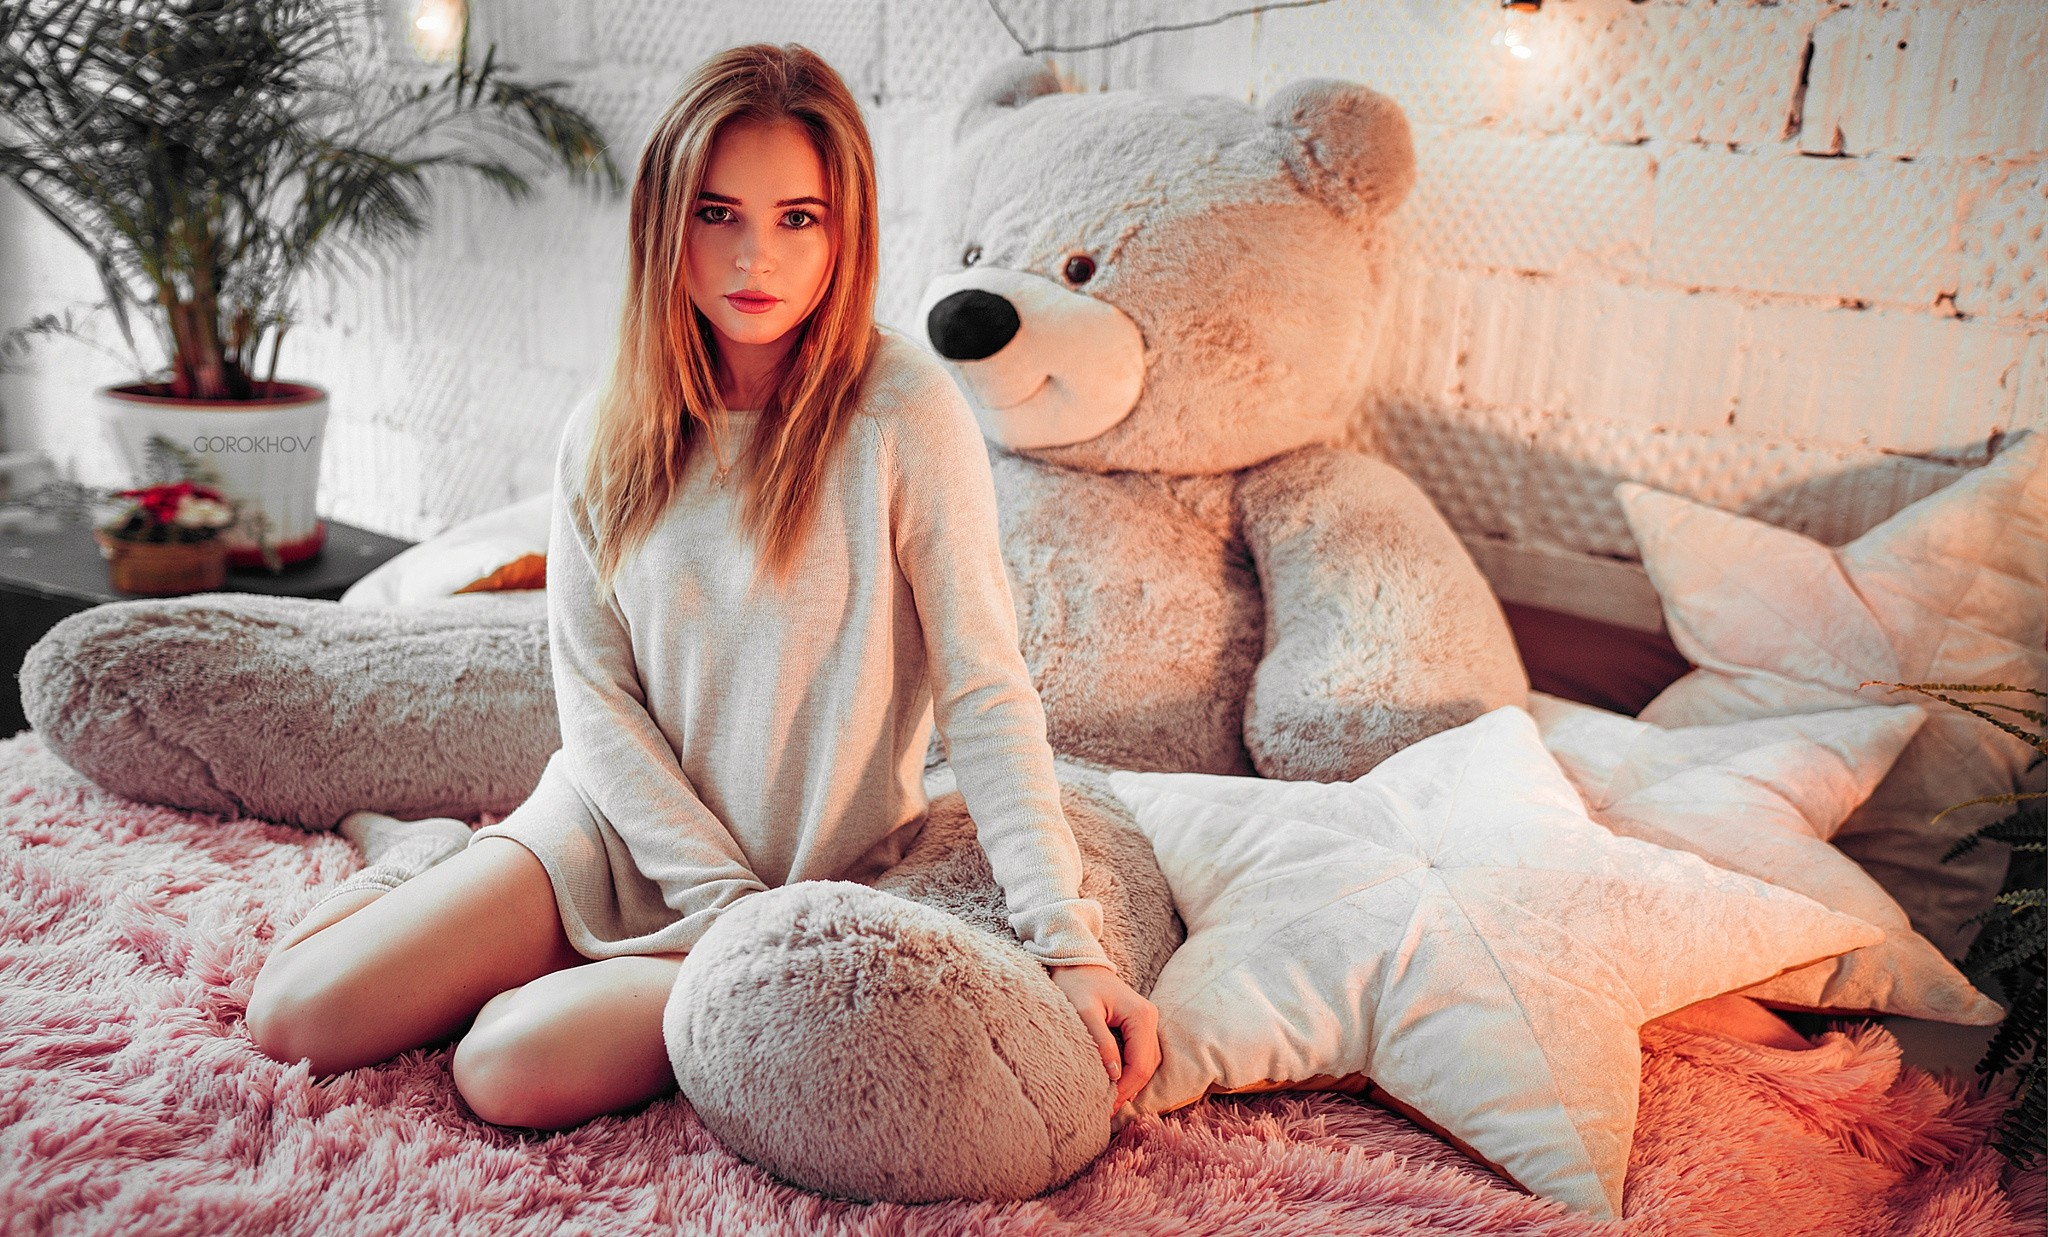 Polina Grents Wallpapers